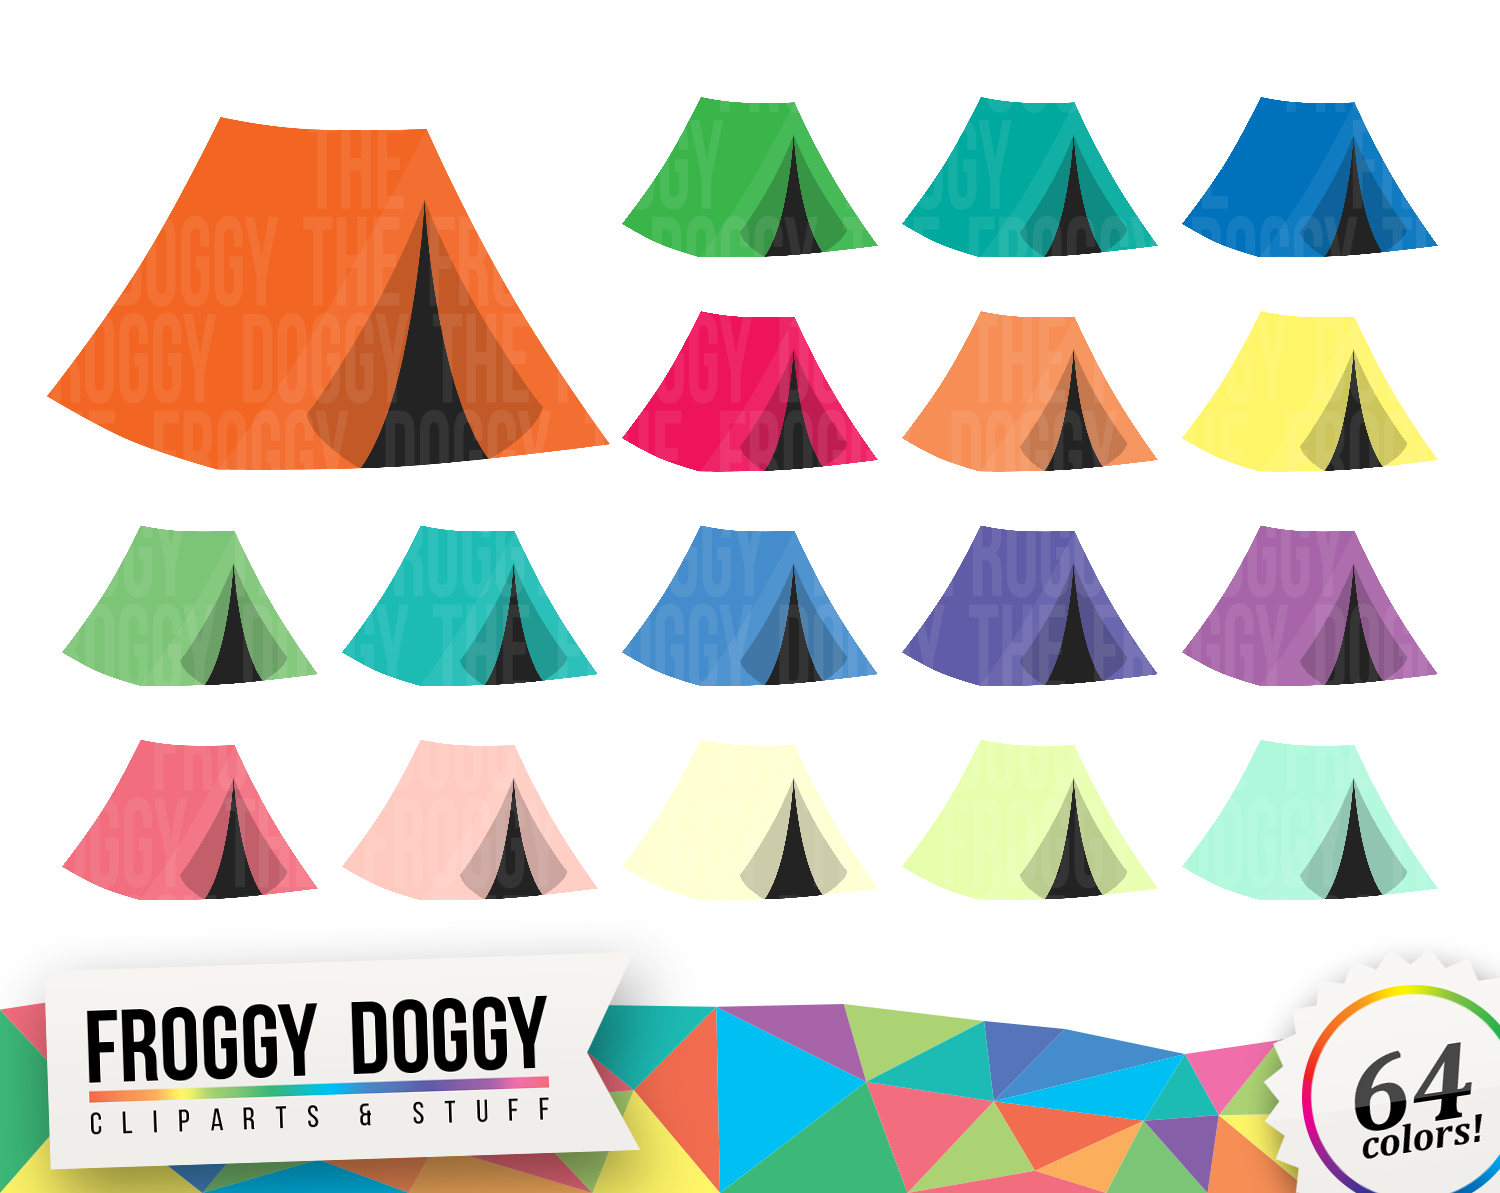 Tent clipart camping trip Is digital a Tent file